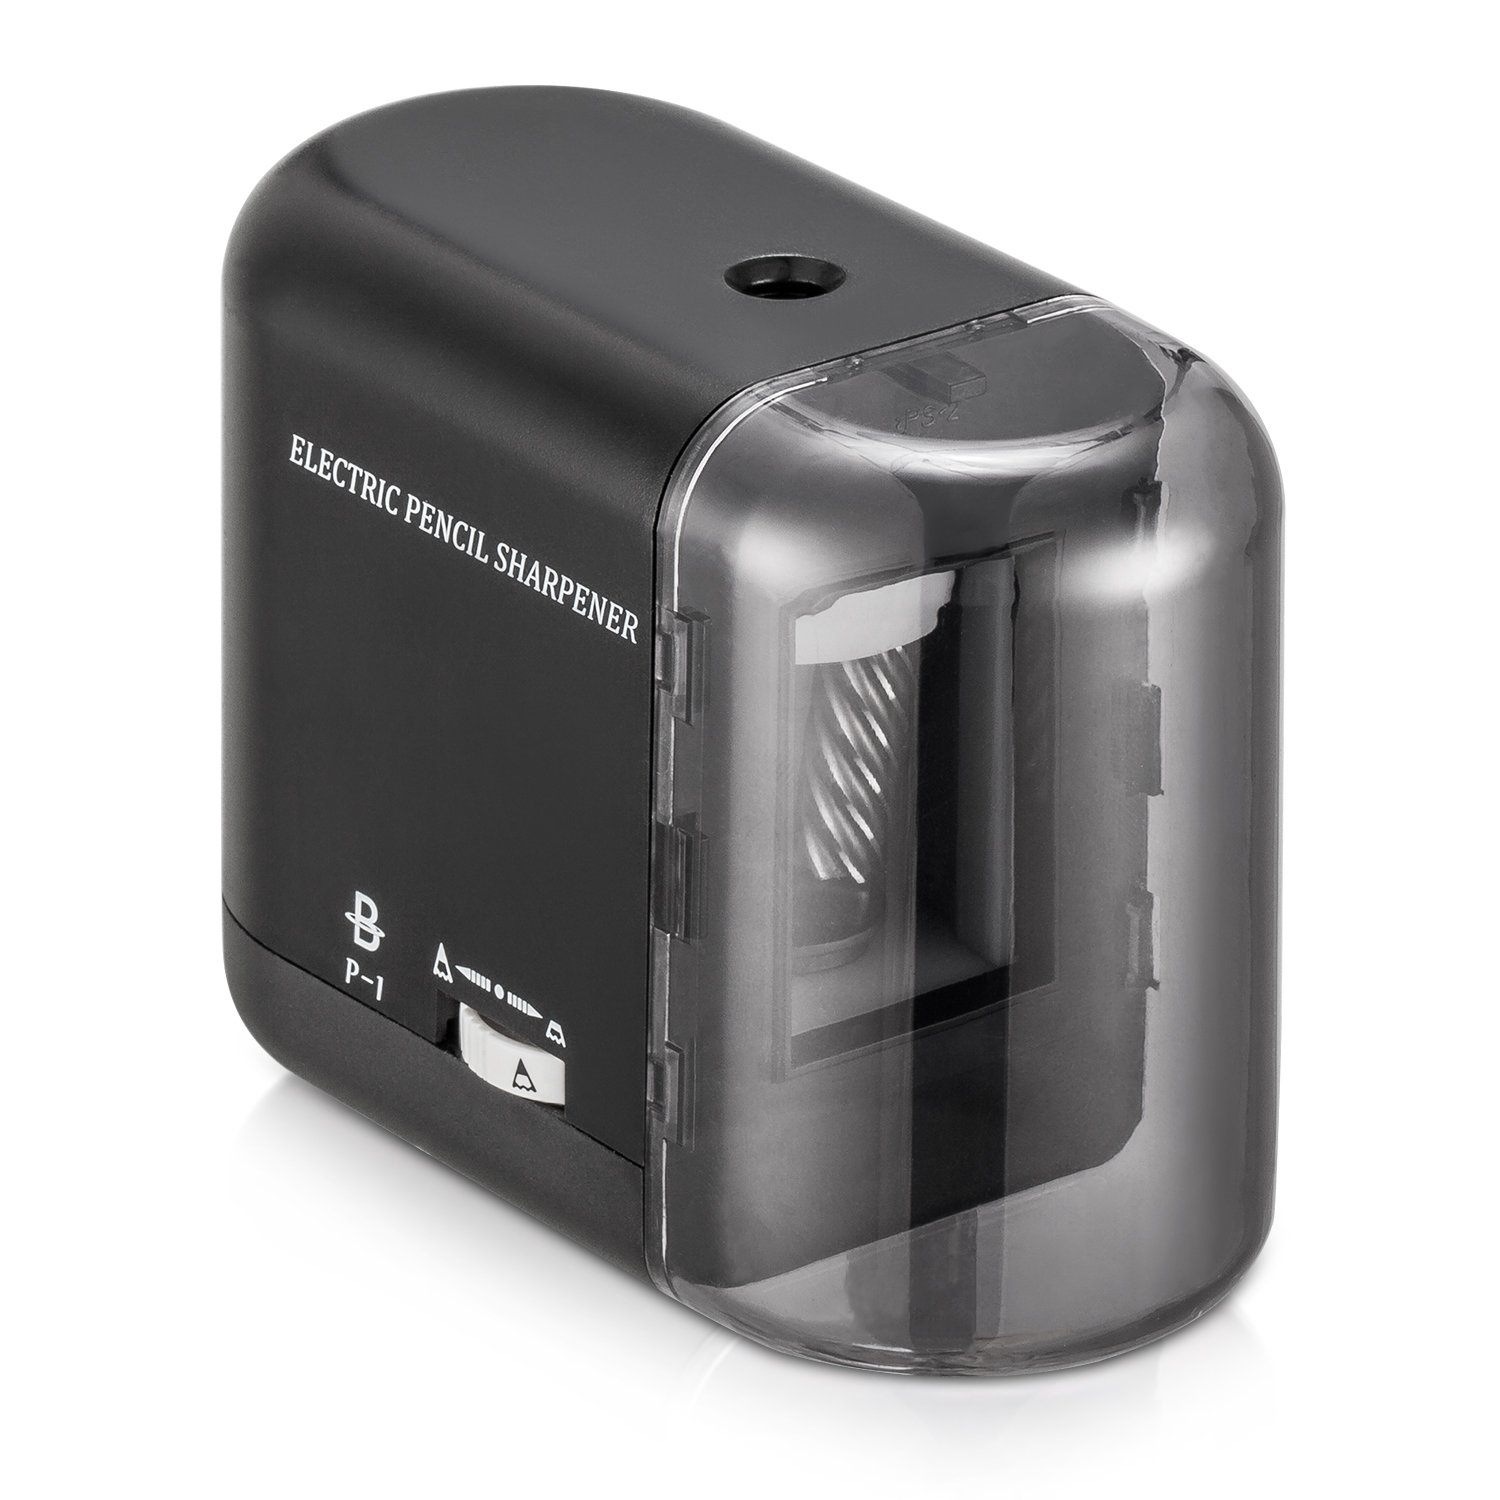 Amazon.com: BOOCOSA Pencil Sharpener, BEST Heavy Duty Steel Blade, Electric  Pencils Sharpener with Auto Stop for School Classroom Office Home – Precise  ...